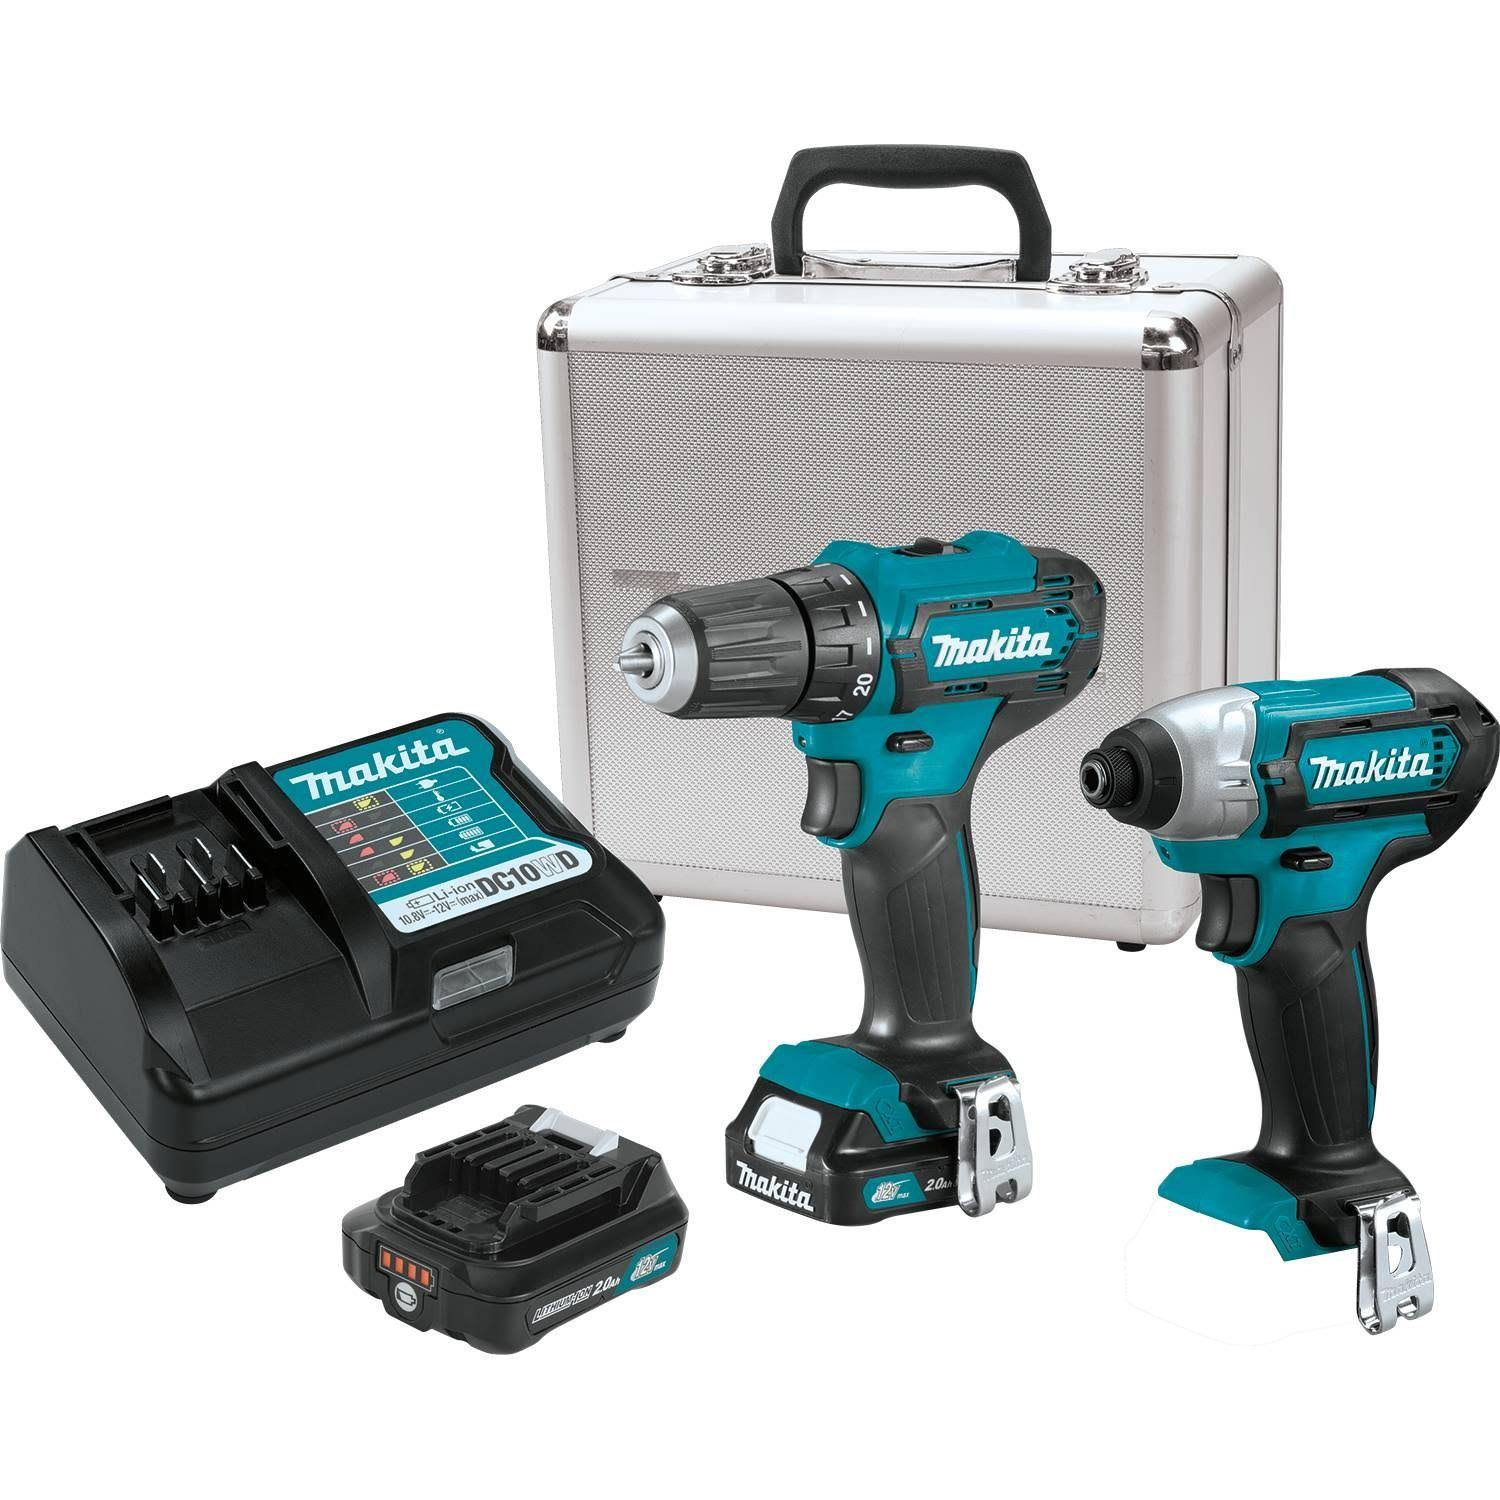 Makita-ct232rx 12V Max CXT Lithium-Ion Cordless 2-pc. Combo Kit (2.0